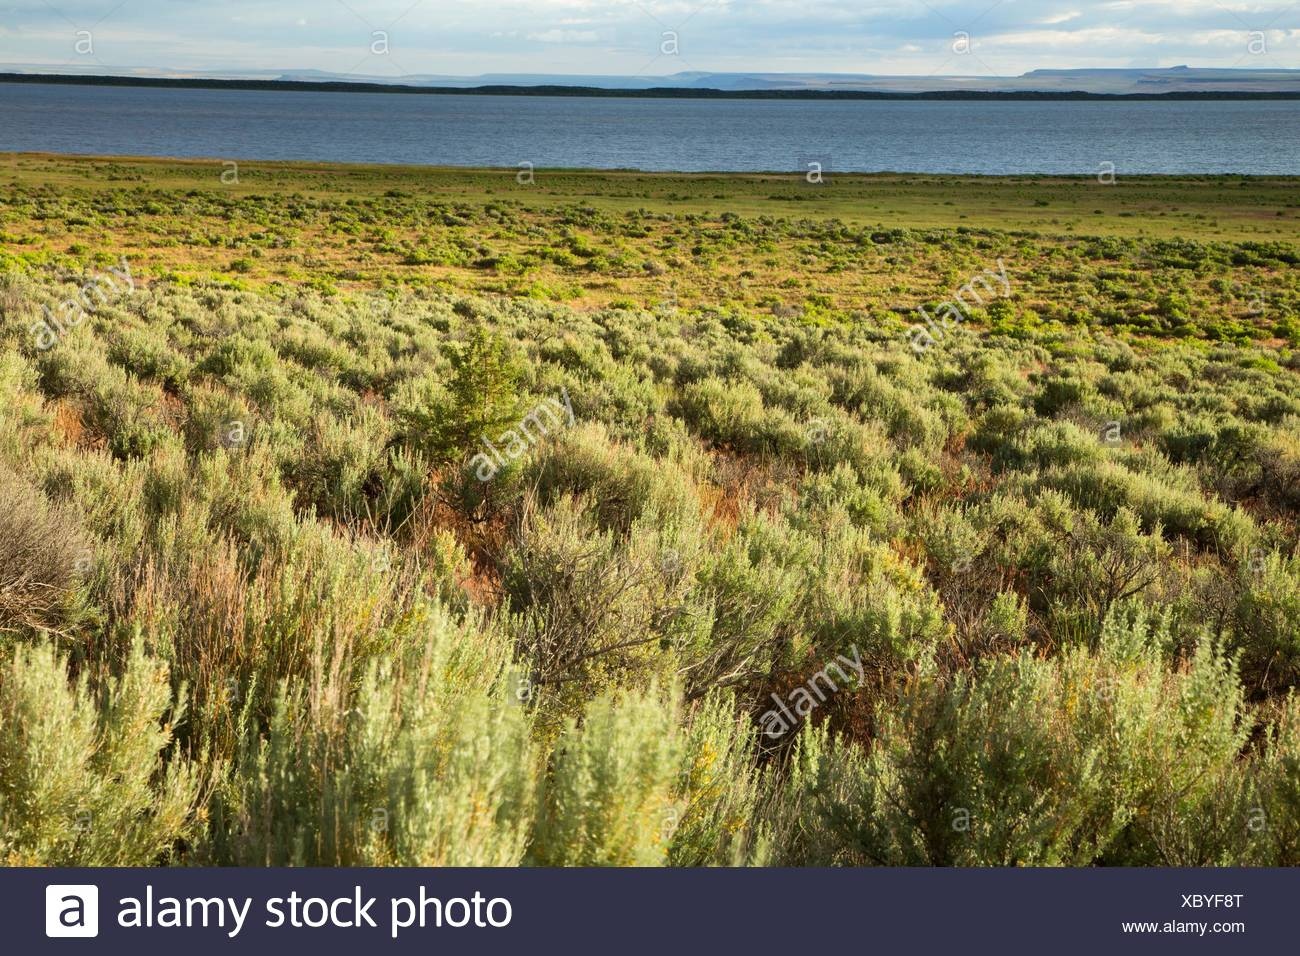 Sagebrush at Campbell Lake, Warner Wetlands Area of Critical Environmental Concern, Lakeview to Steens National Back Country Byway, Oregon. - Stock Image